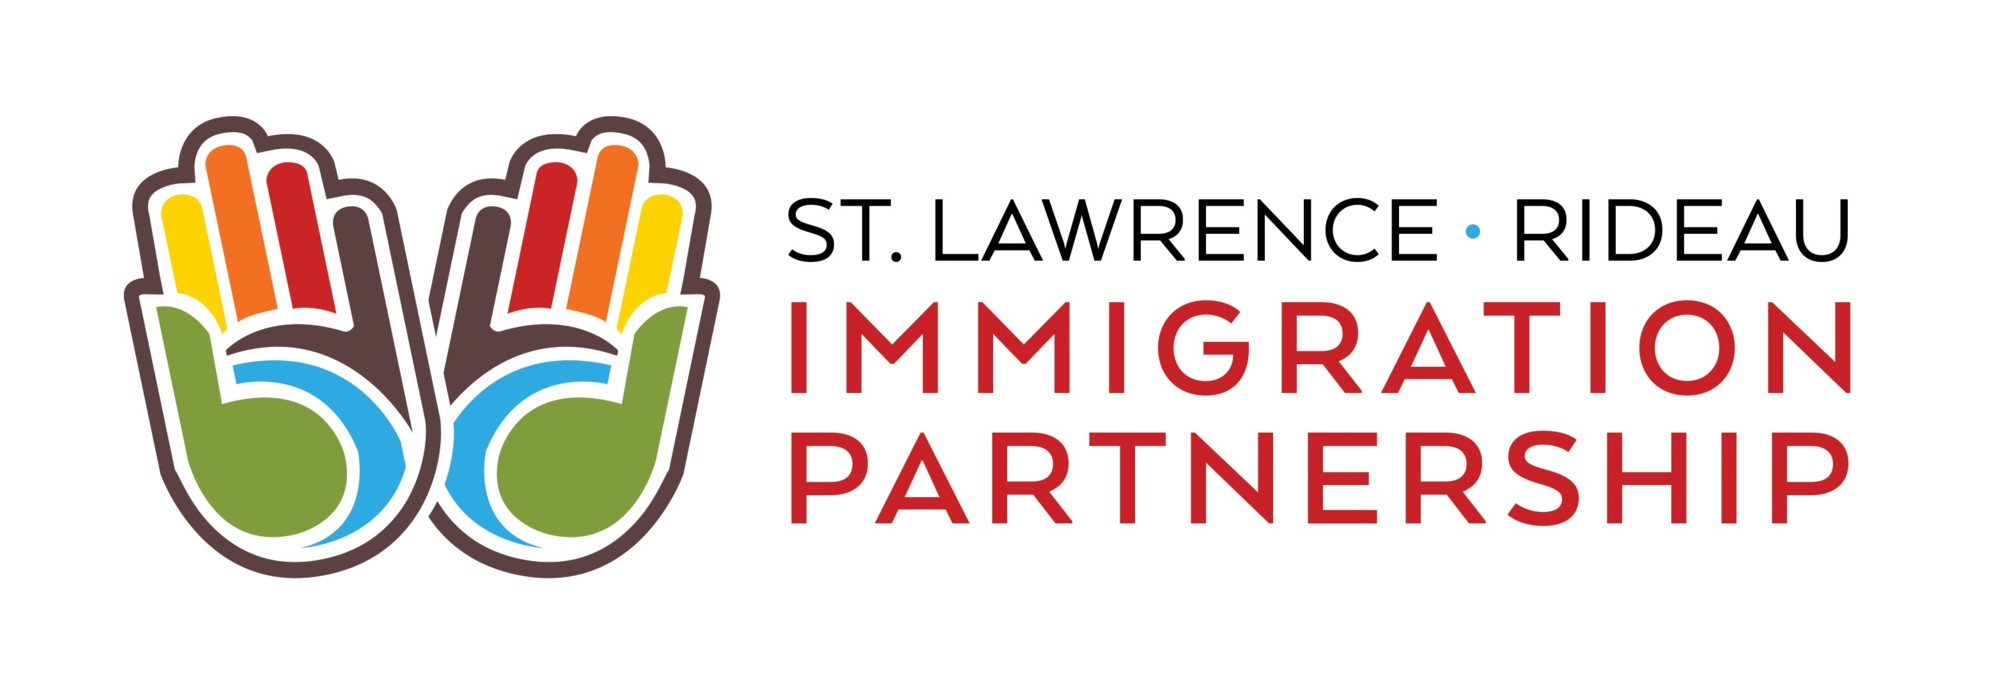 St. Lawrence Rideau Immigration Partnership Logo